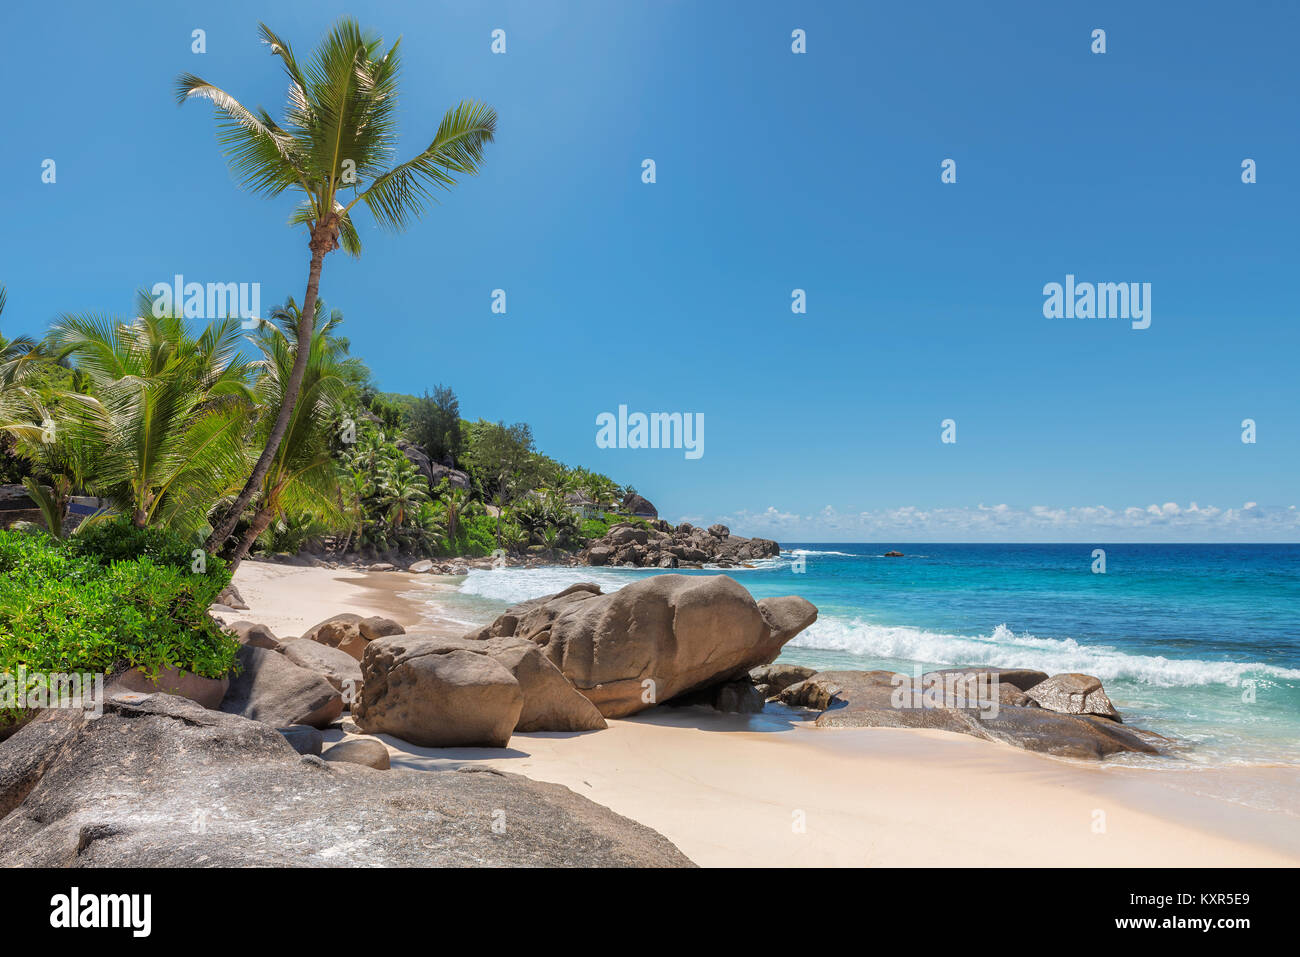 Seychelles beach with palms and beautiful stones. - Stock Image